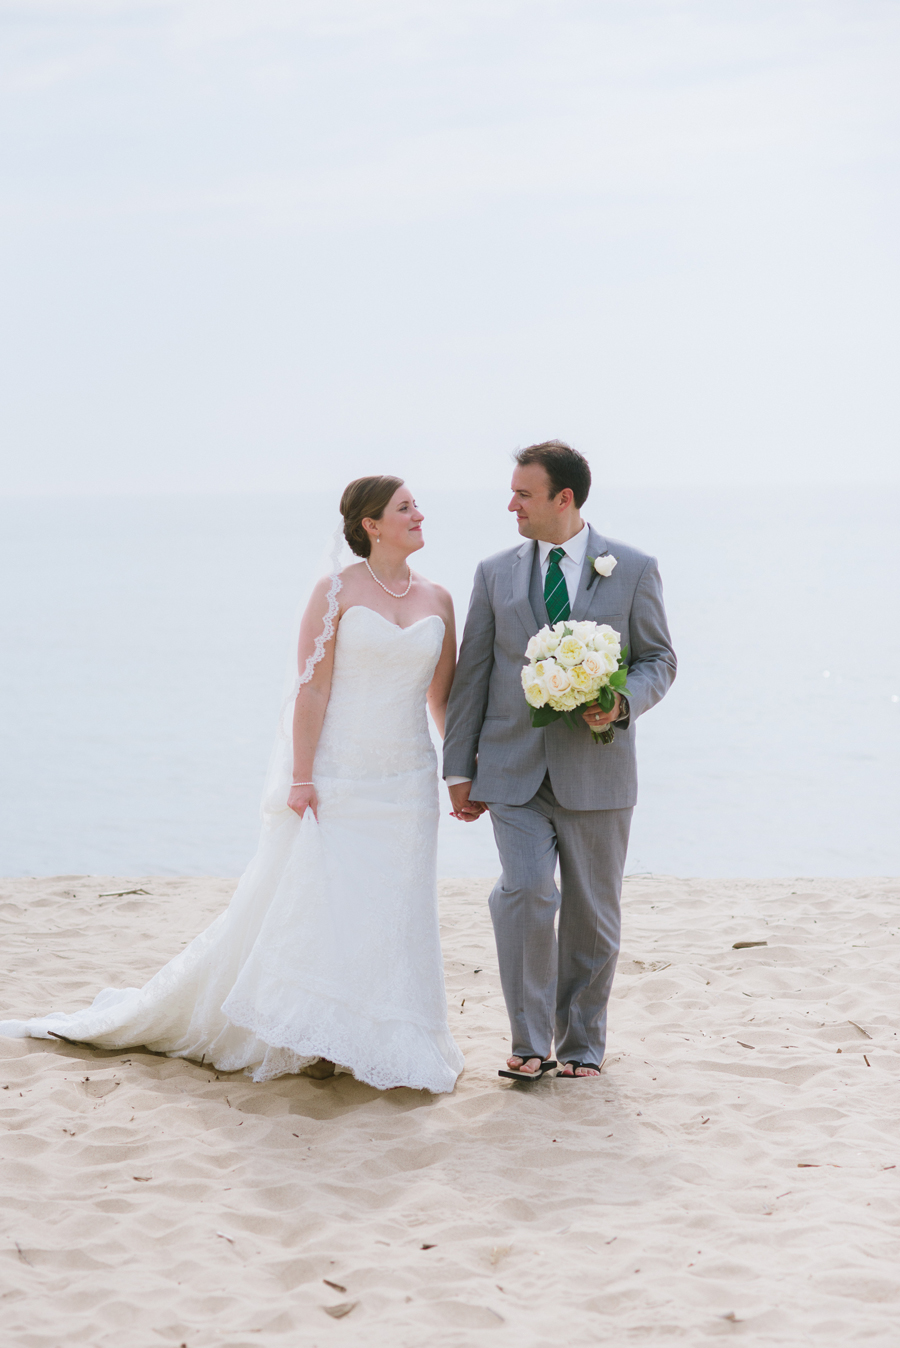 Lake-Michigan-Beach-Wedding-57